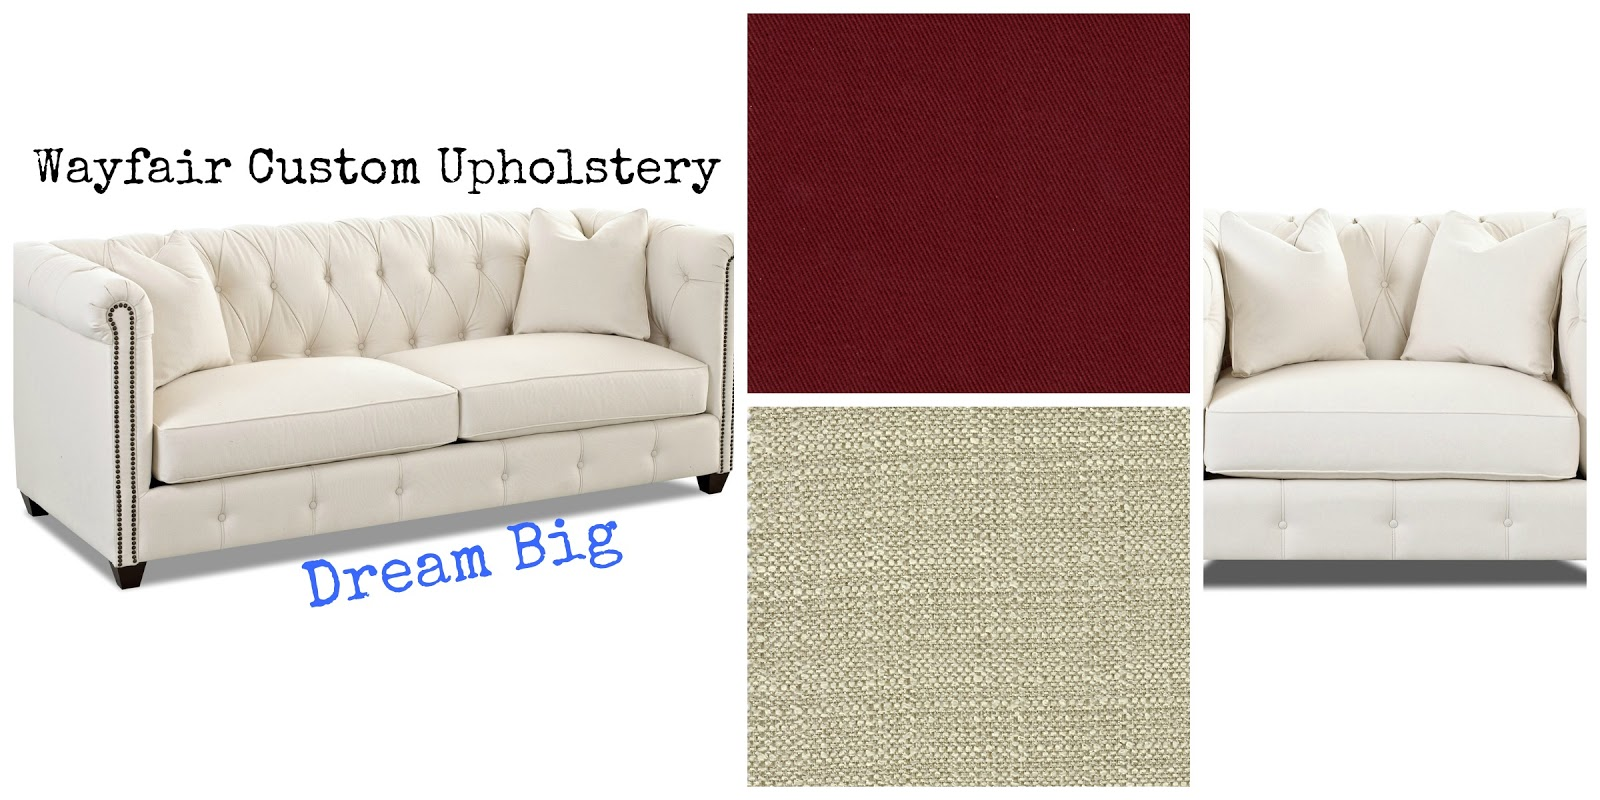 Wayfair Custom Upholstery